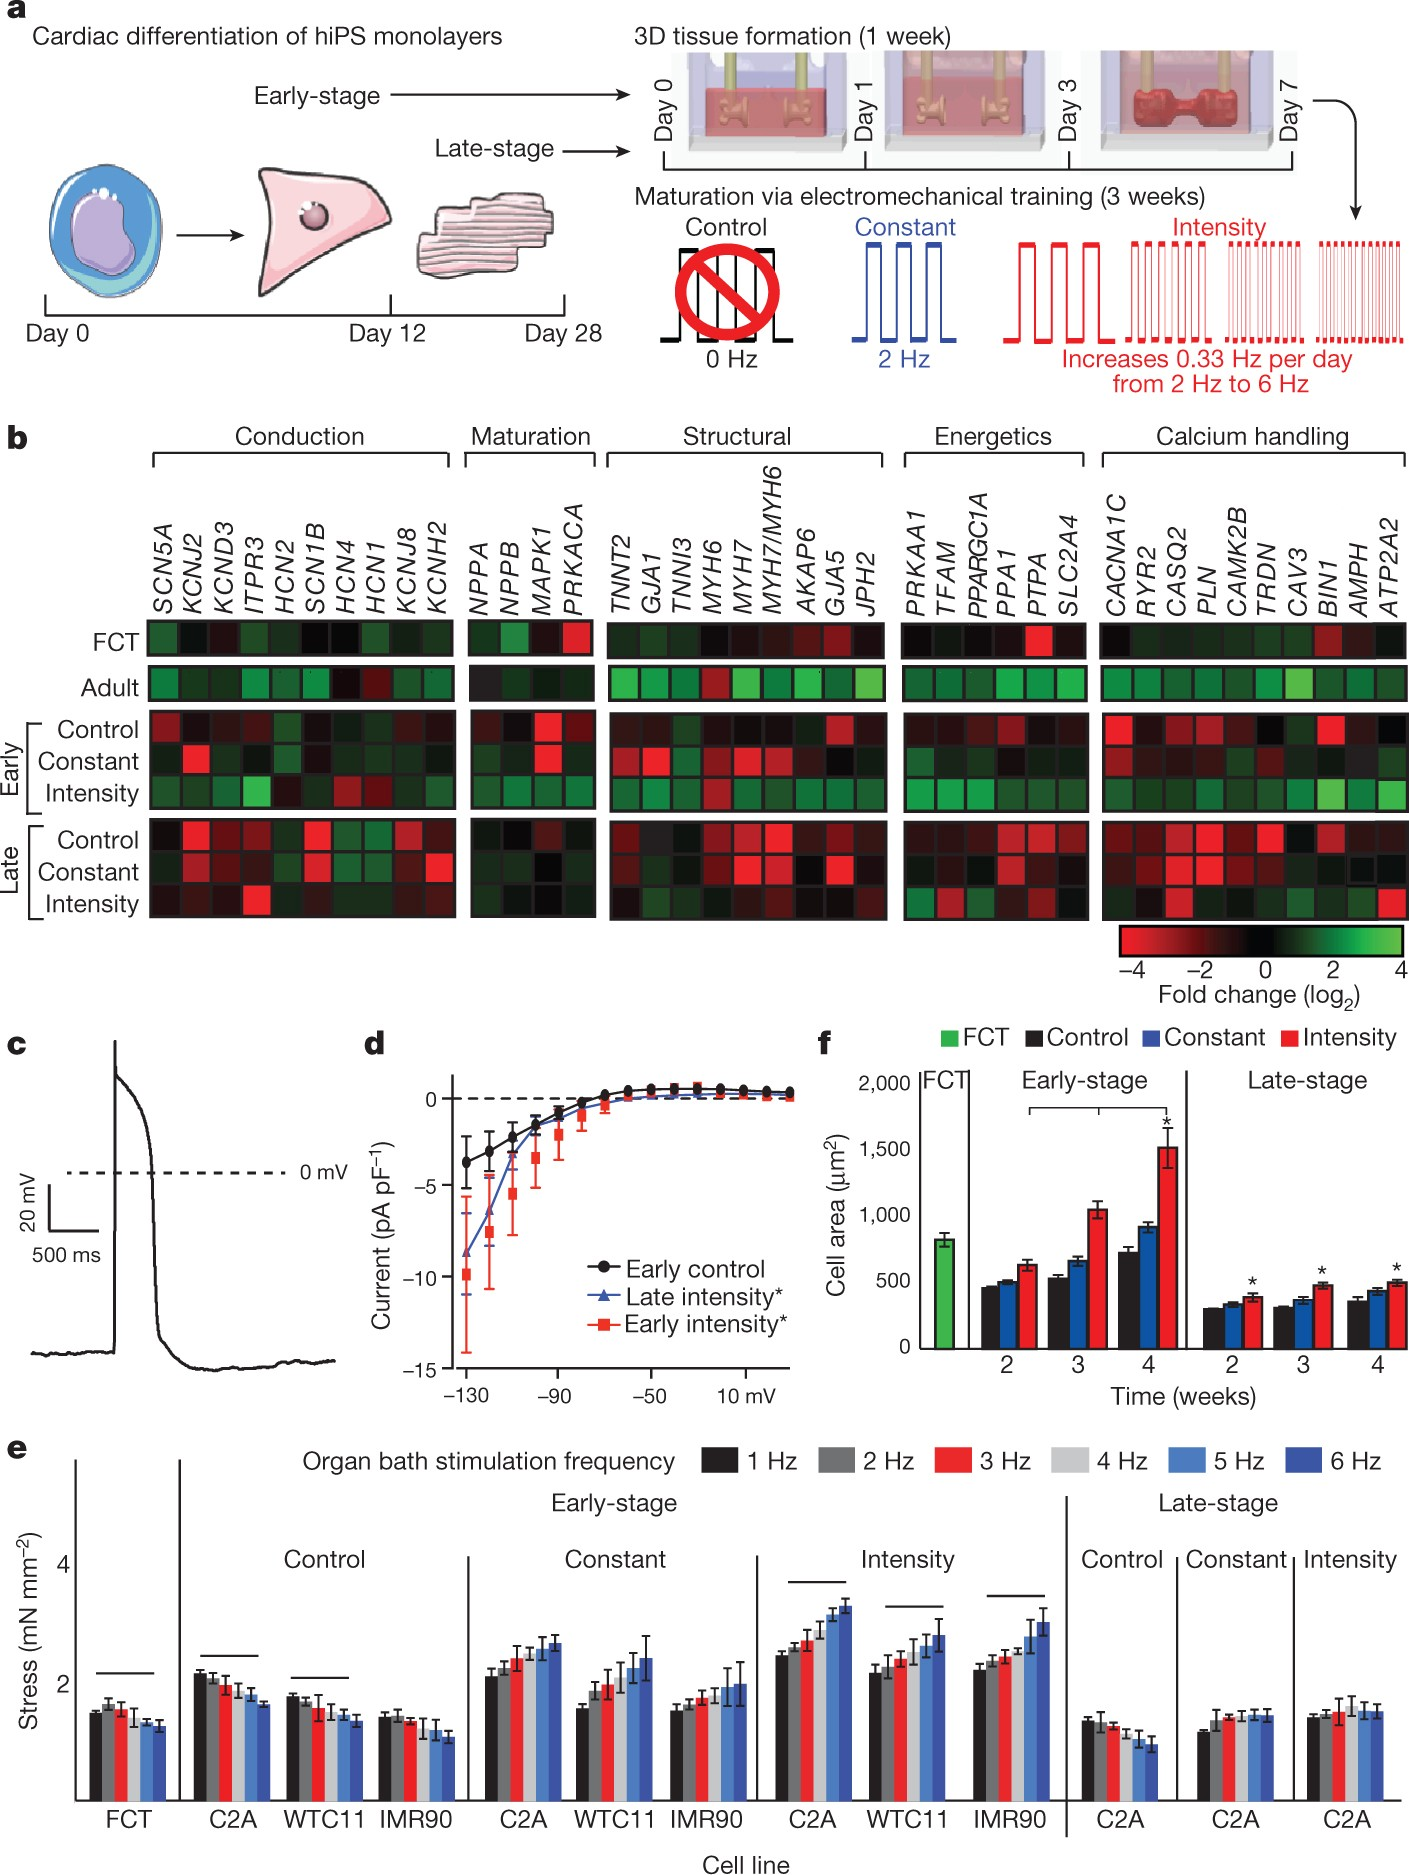 Advanced maturation of human cardiac tissue grown from pluripotent